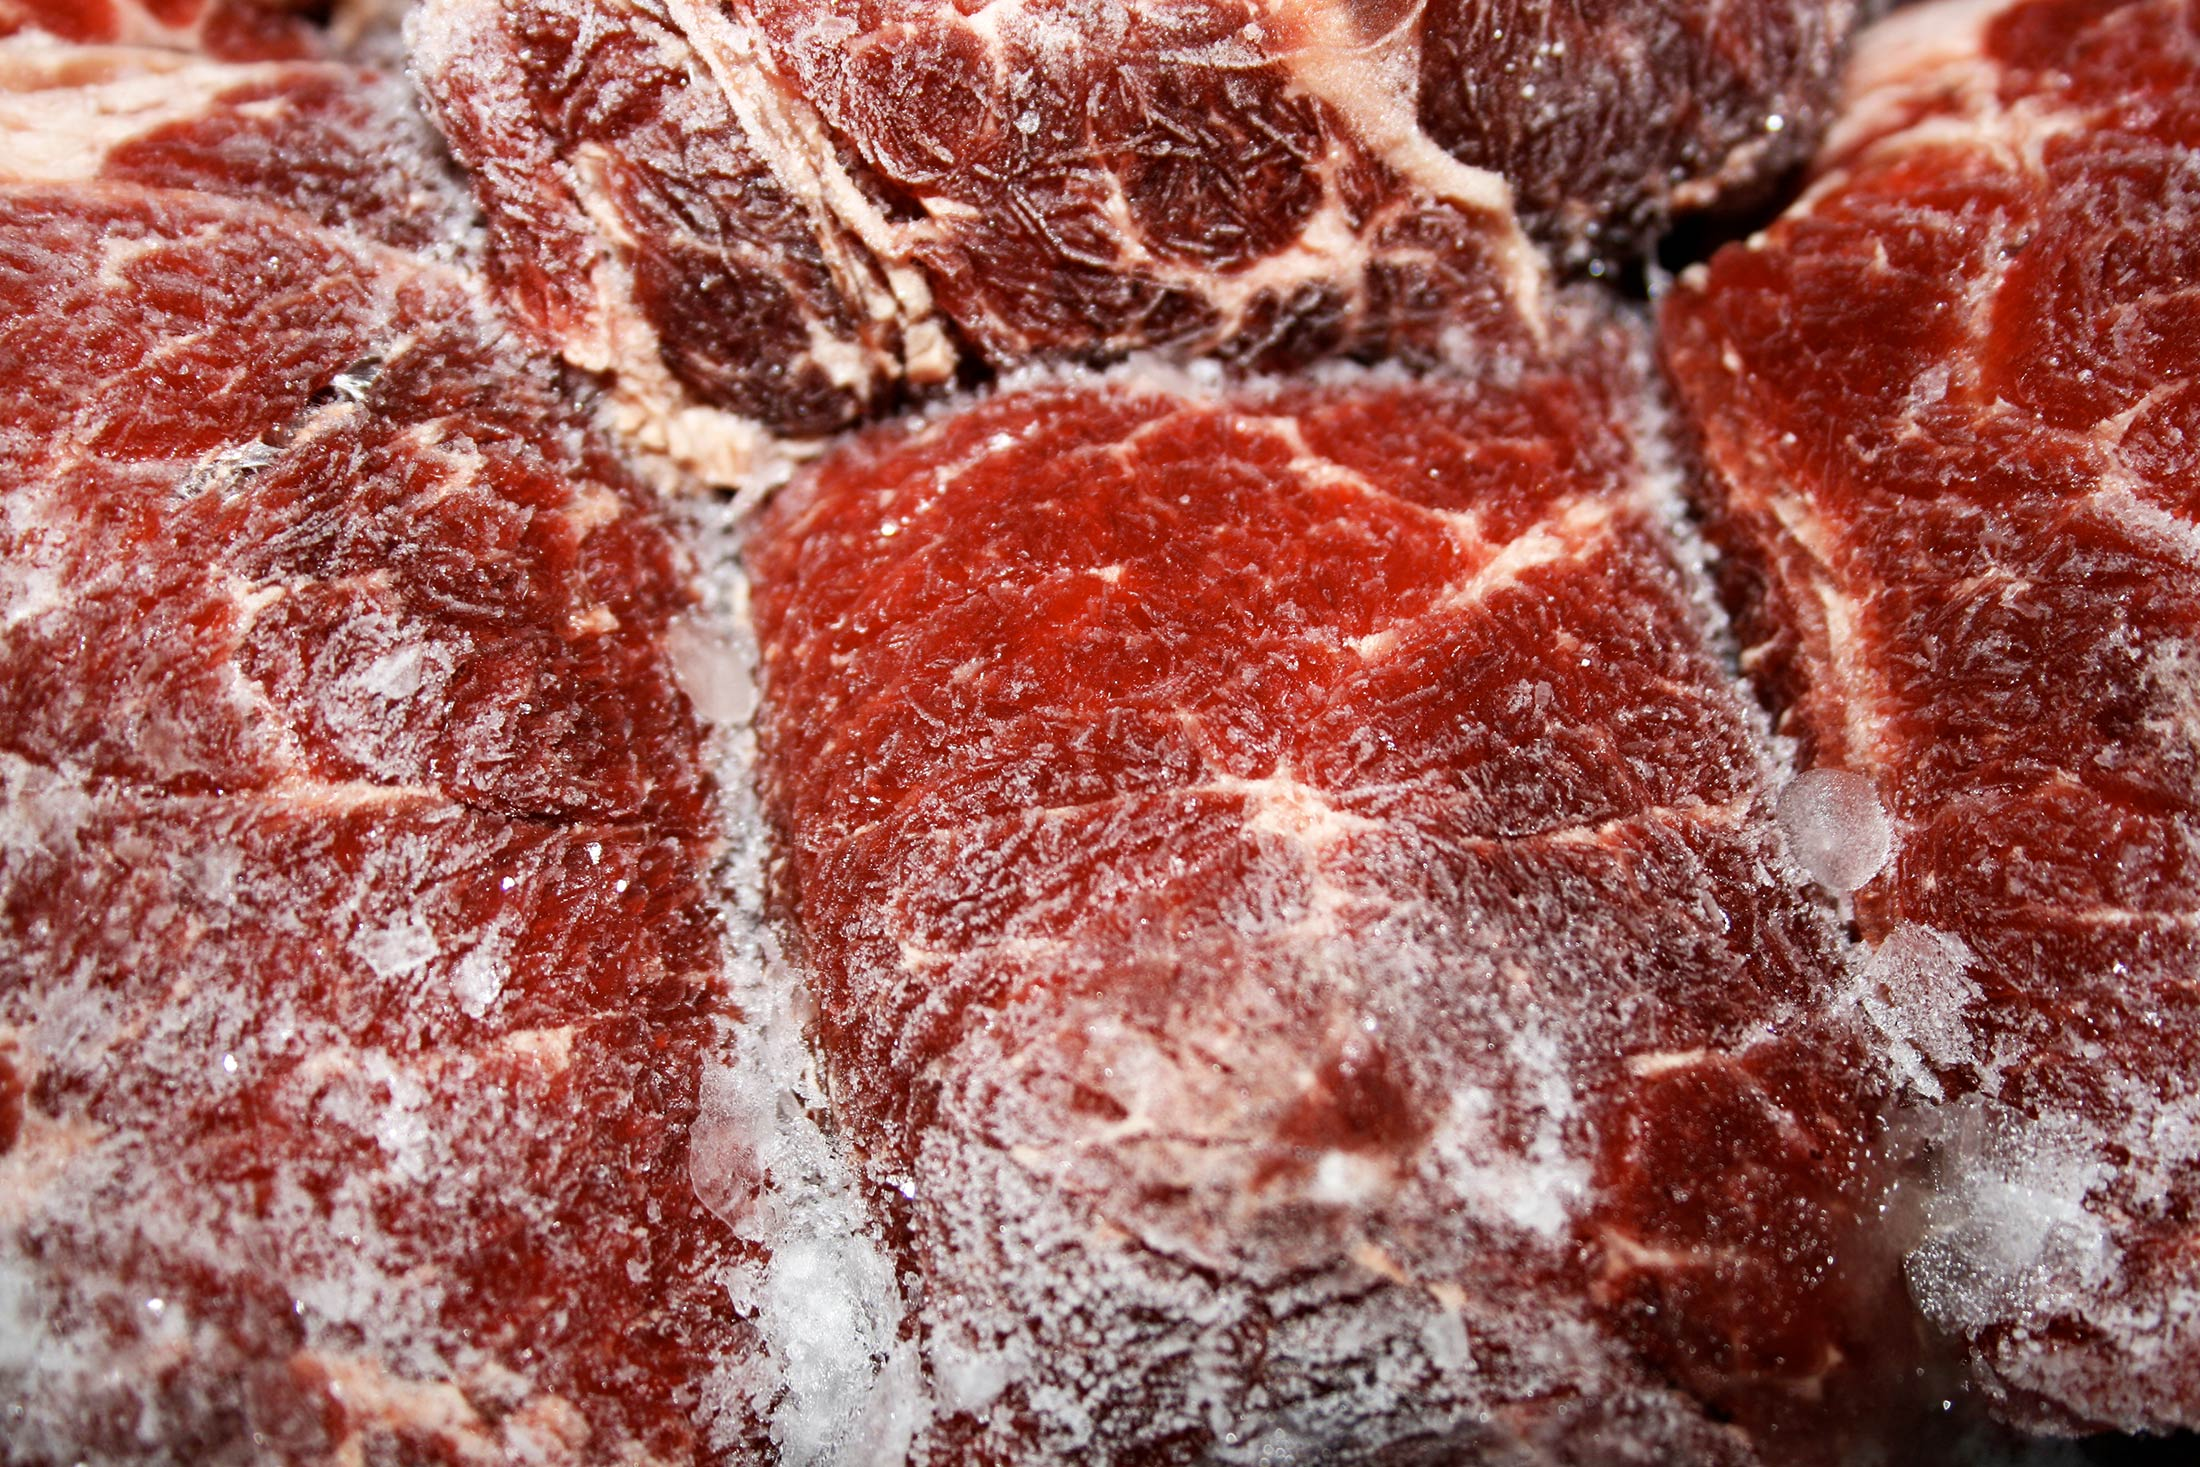 Frozen Beef Stranded at Sea as China Shuts Out Brazil's Meat - Bloomberg